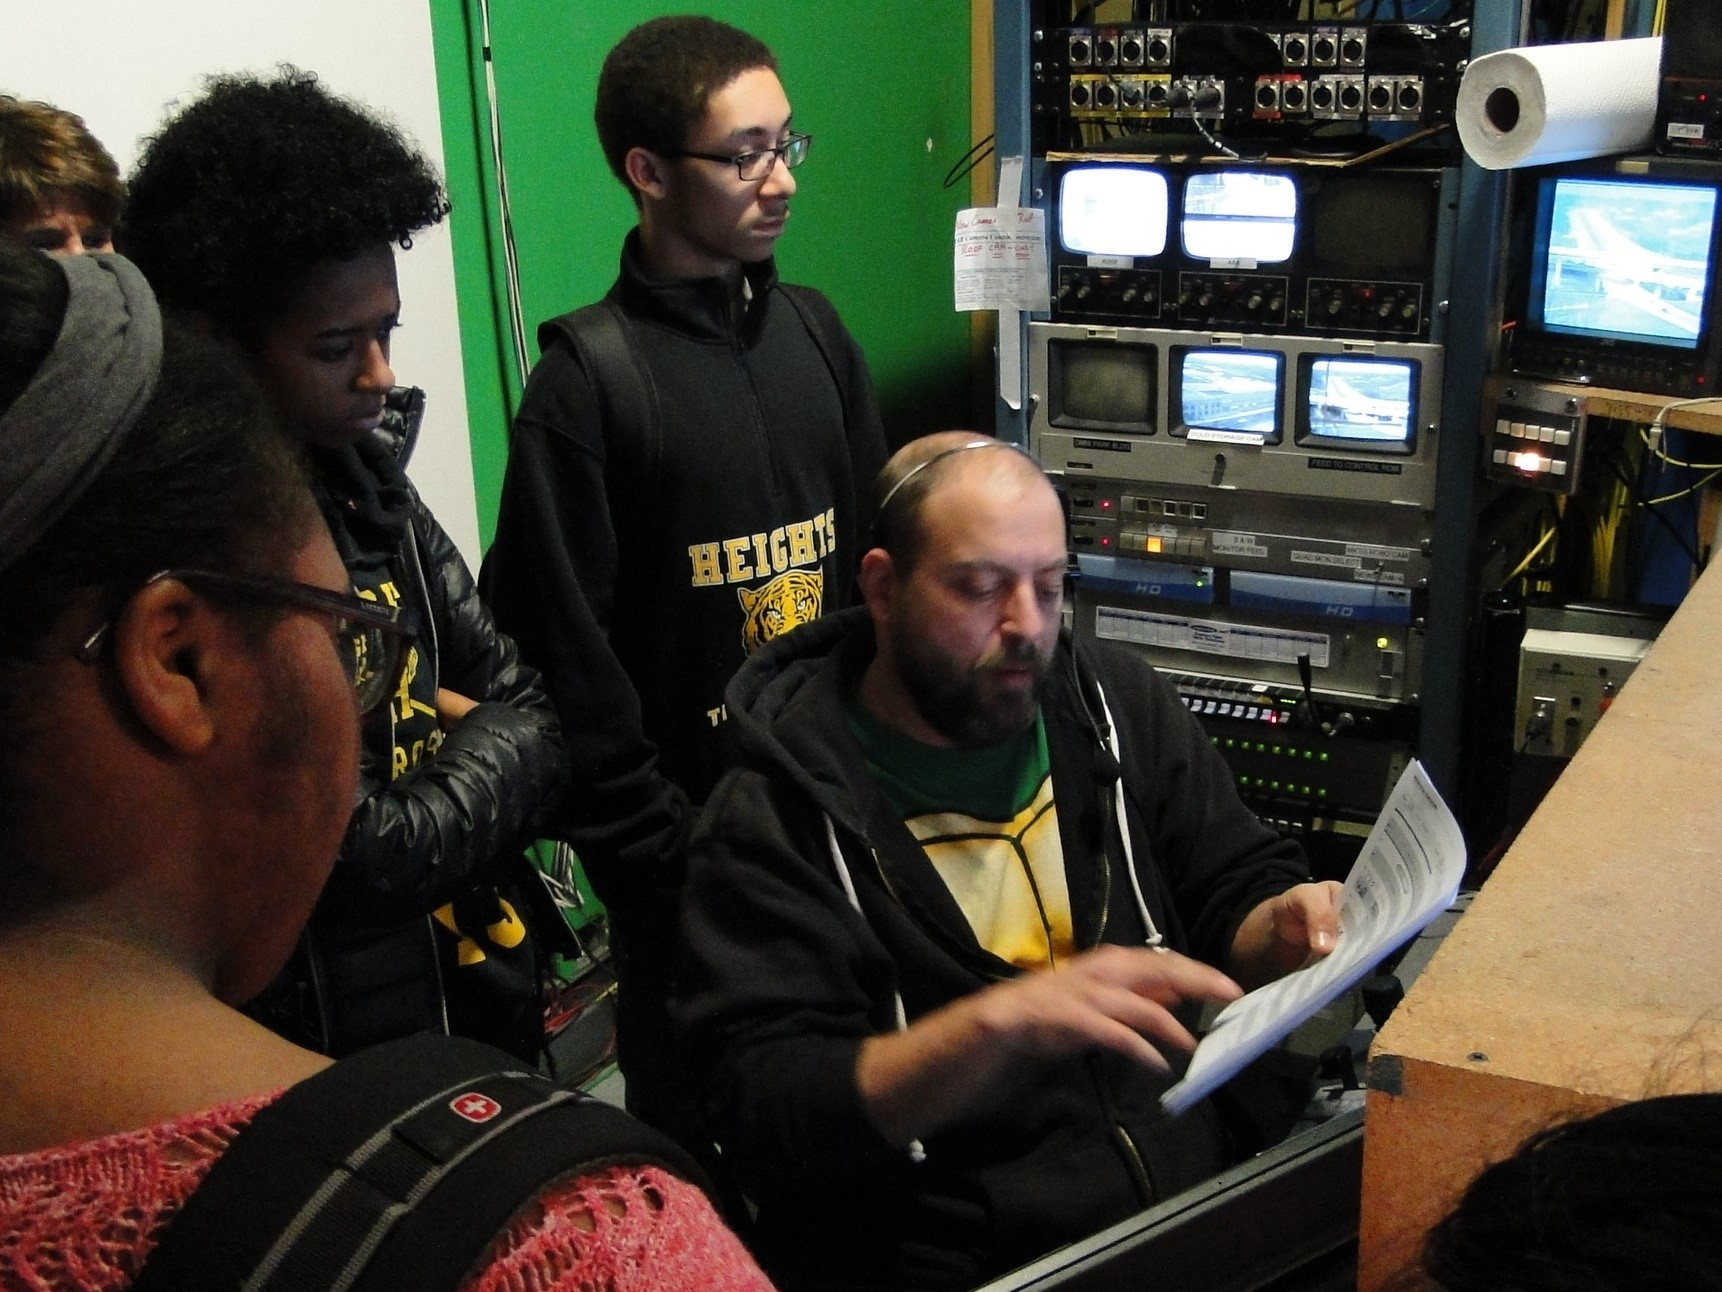 Steve Myerson is the Camera Robotics Operator & Audio Controller - he is explaining his role to students.